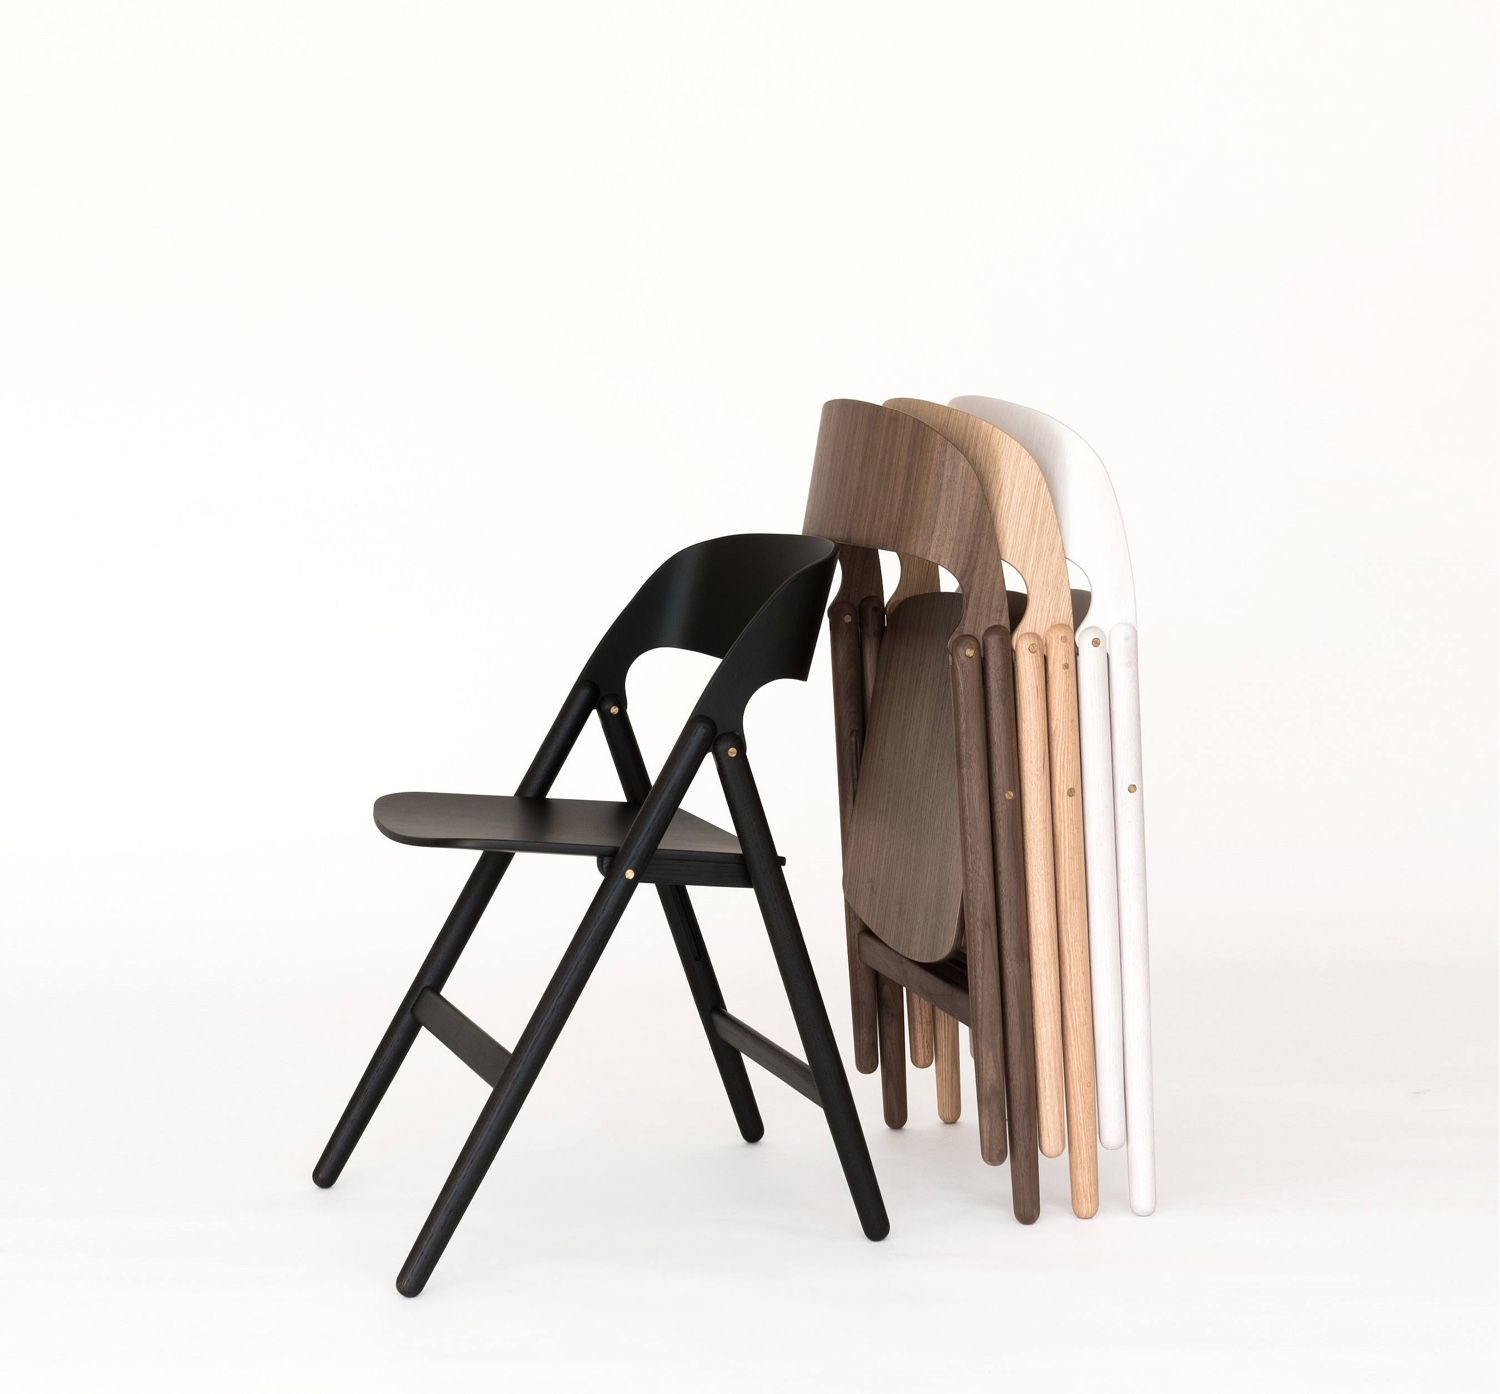 Narin Folding Chair in various finishes